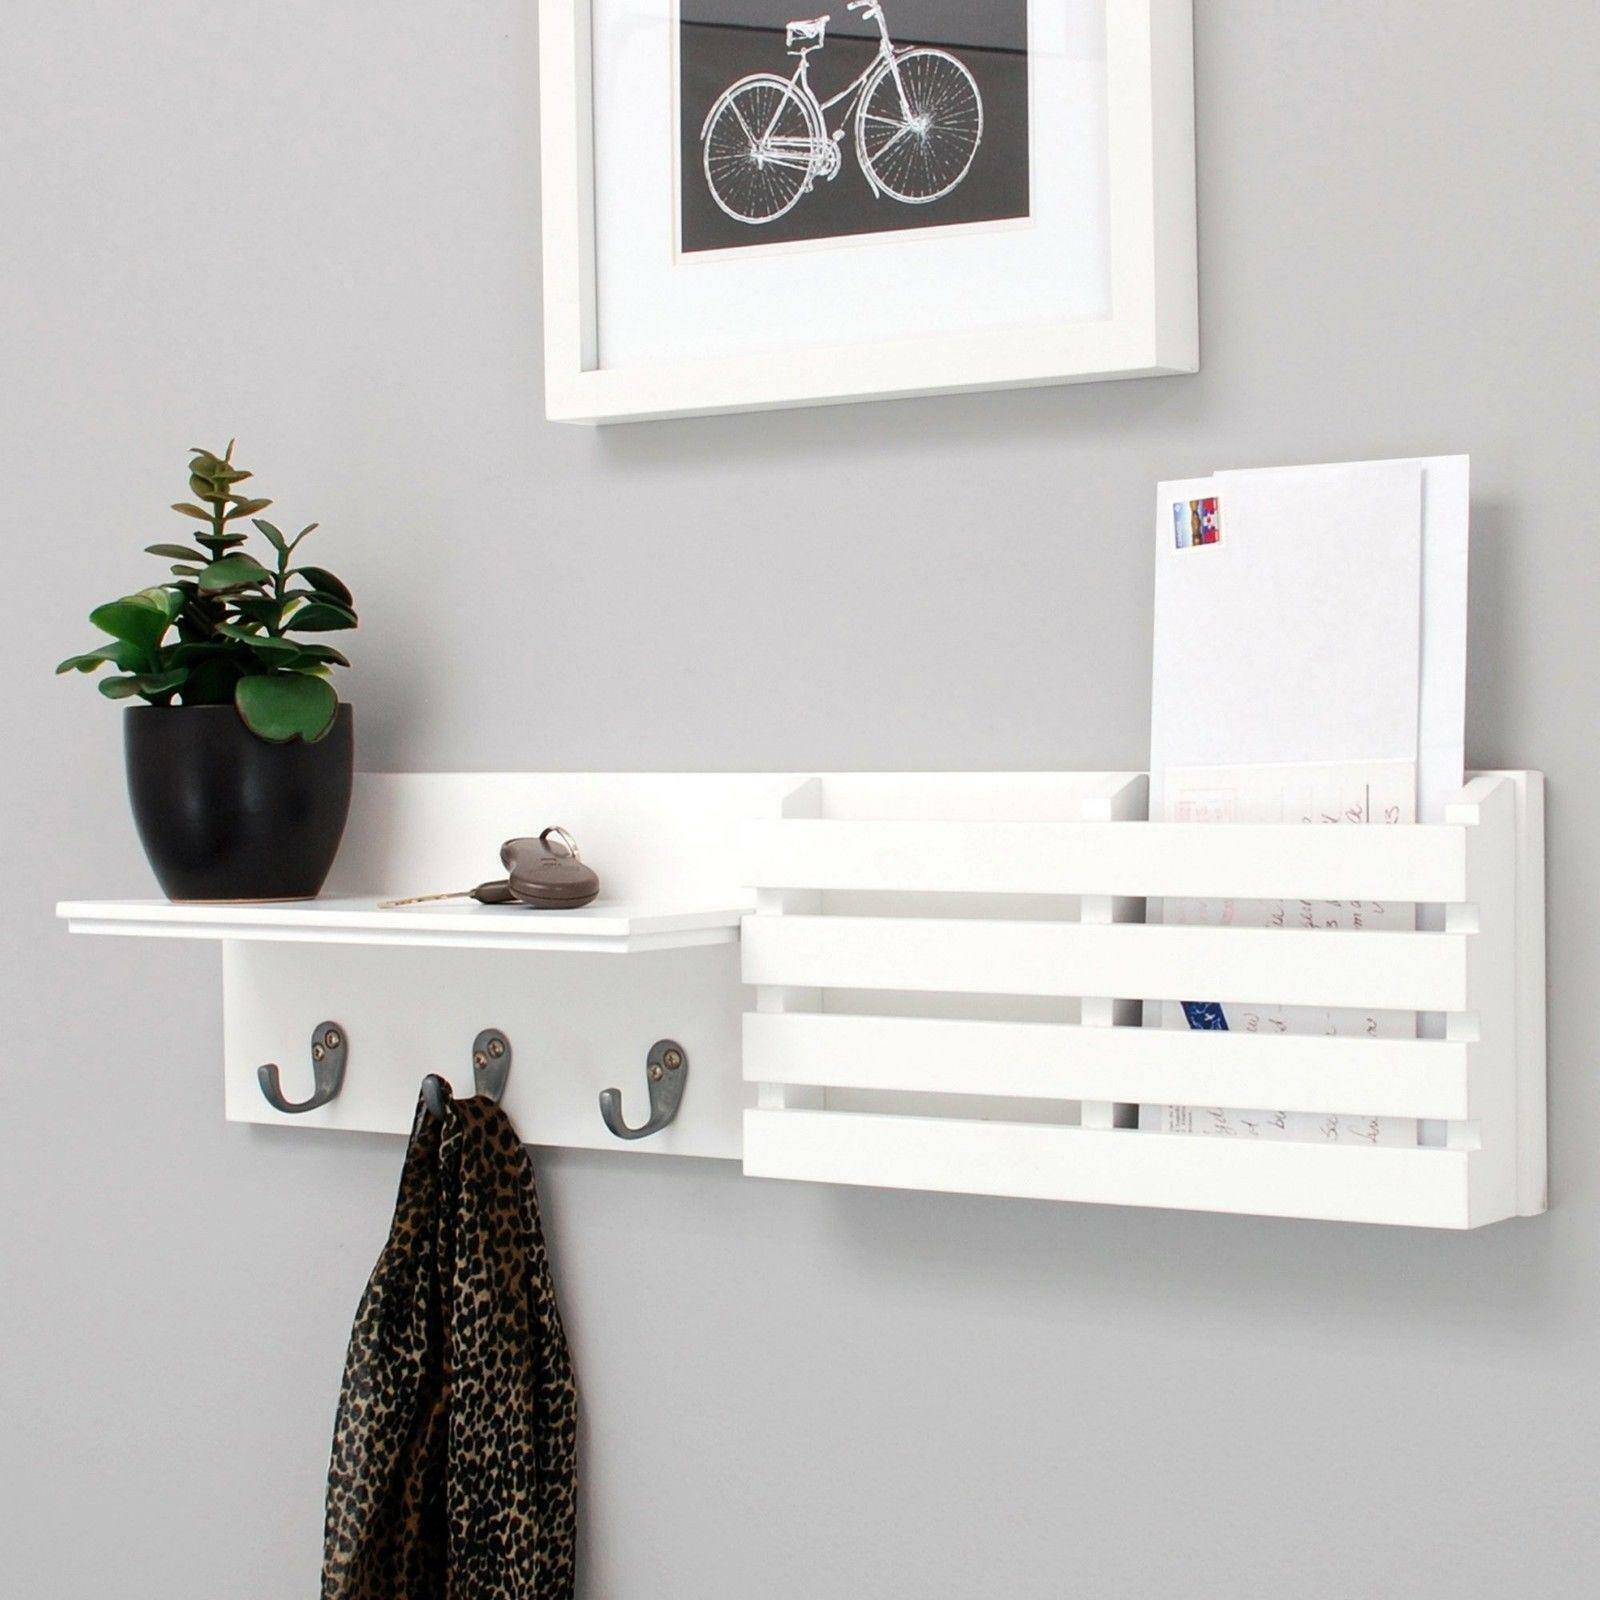 sydney floating shelves wall shelf mail holder hooks inch white with stock ends lack side table hack plywood brackets diy black cube self stick vinyl tiles concrete knoppang ture